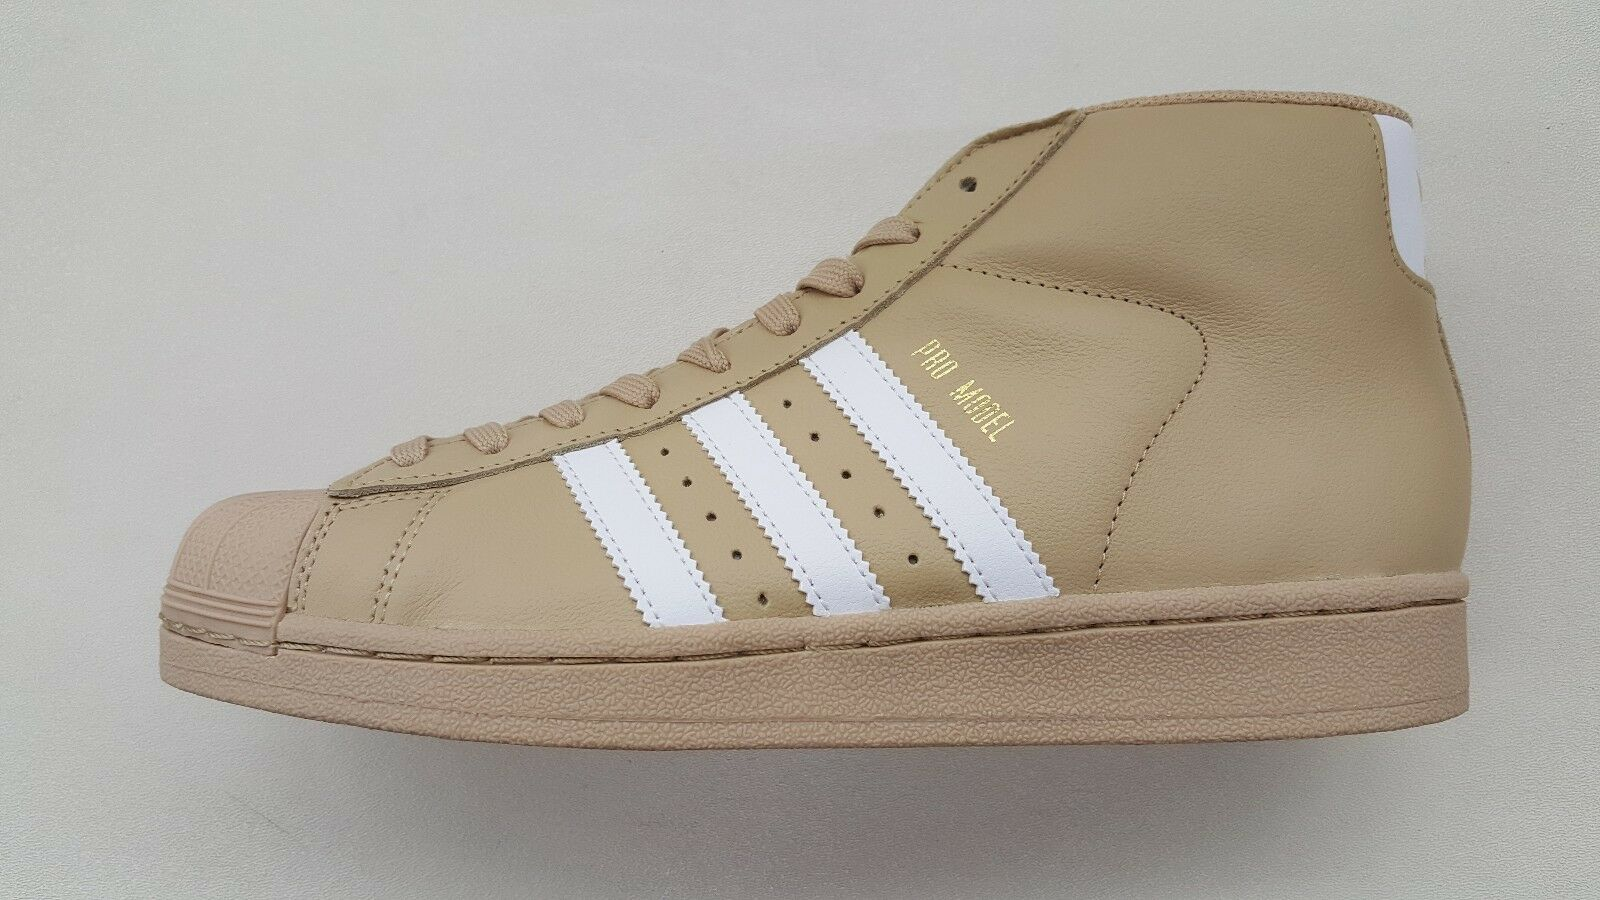 ADIDAS ORIGINALS PRO MODEL KHAKI BEIGE WHITE gold MENS SIZE SNEAKERS CG5072